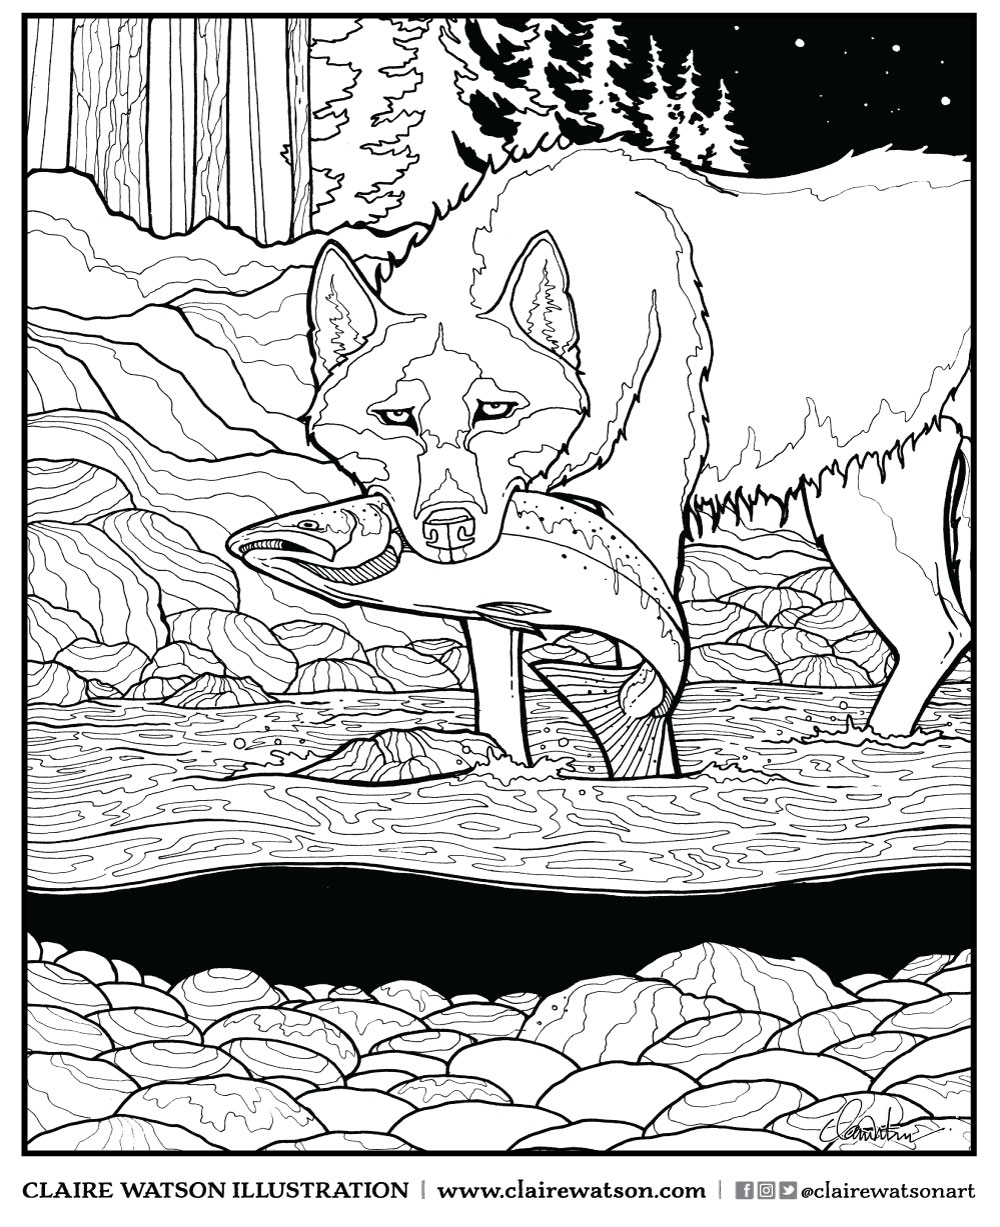 coastal-wolf-colouring-page-claire-watson.jpg